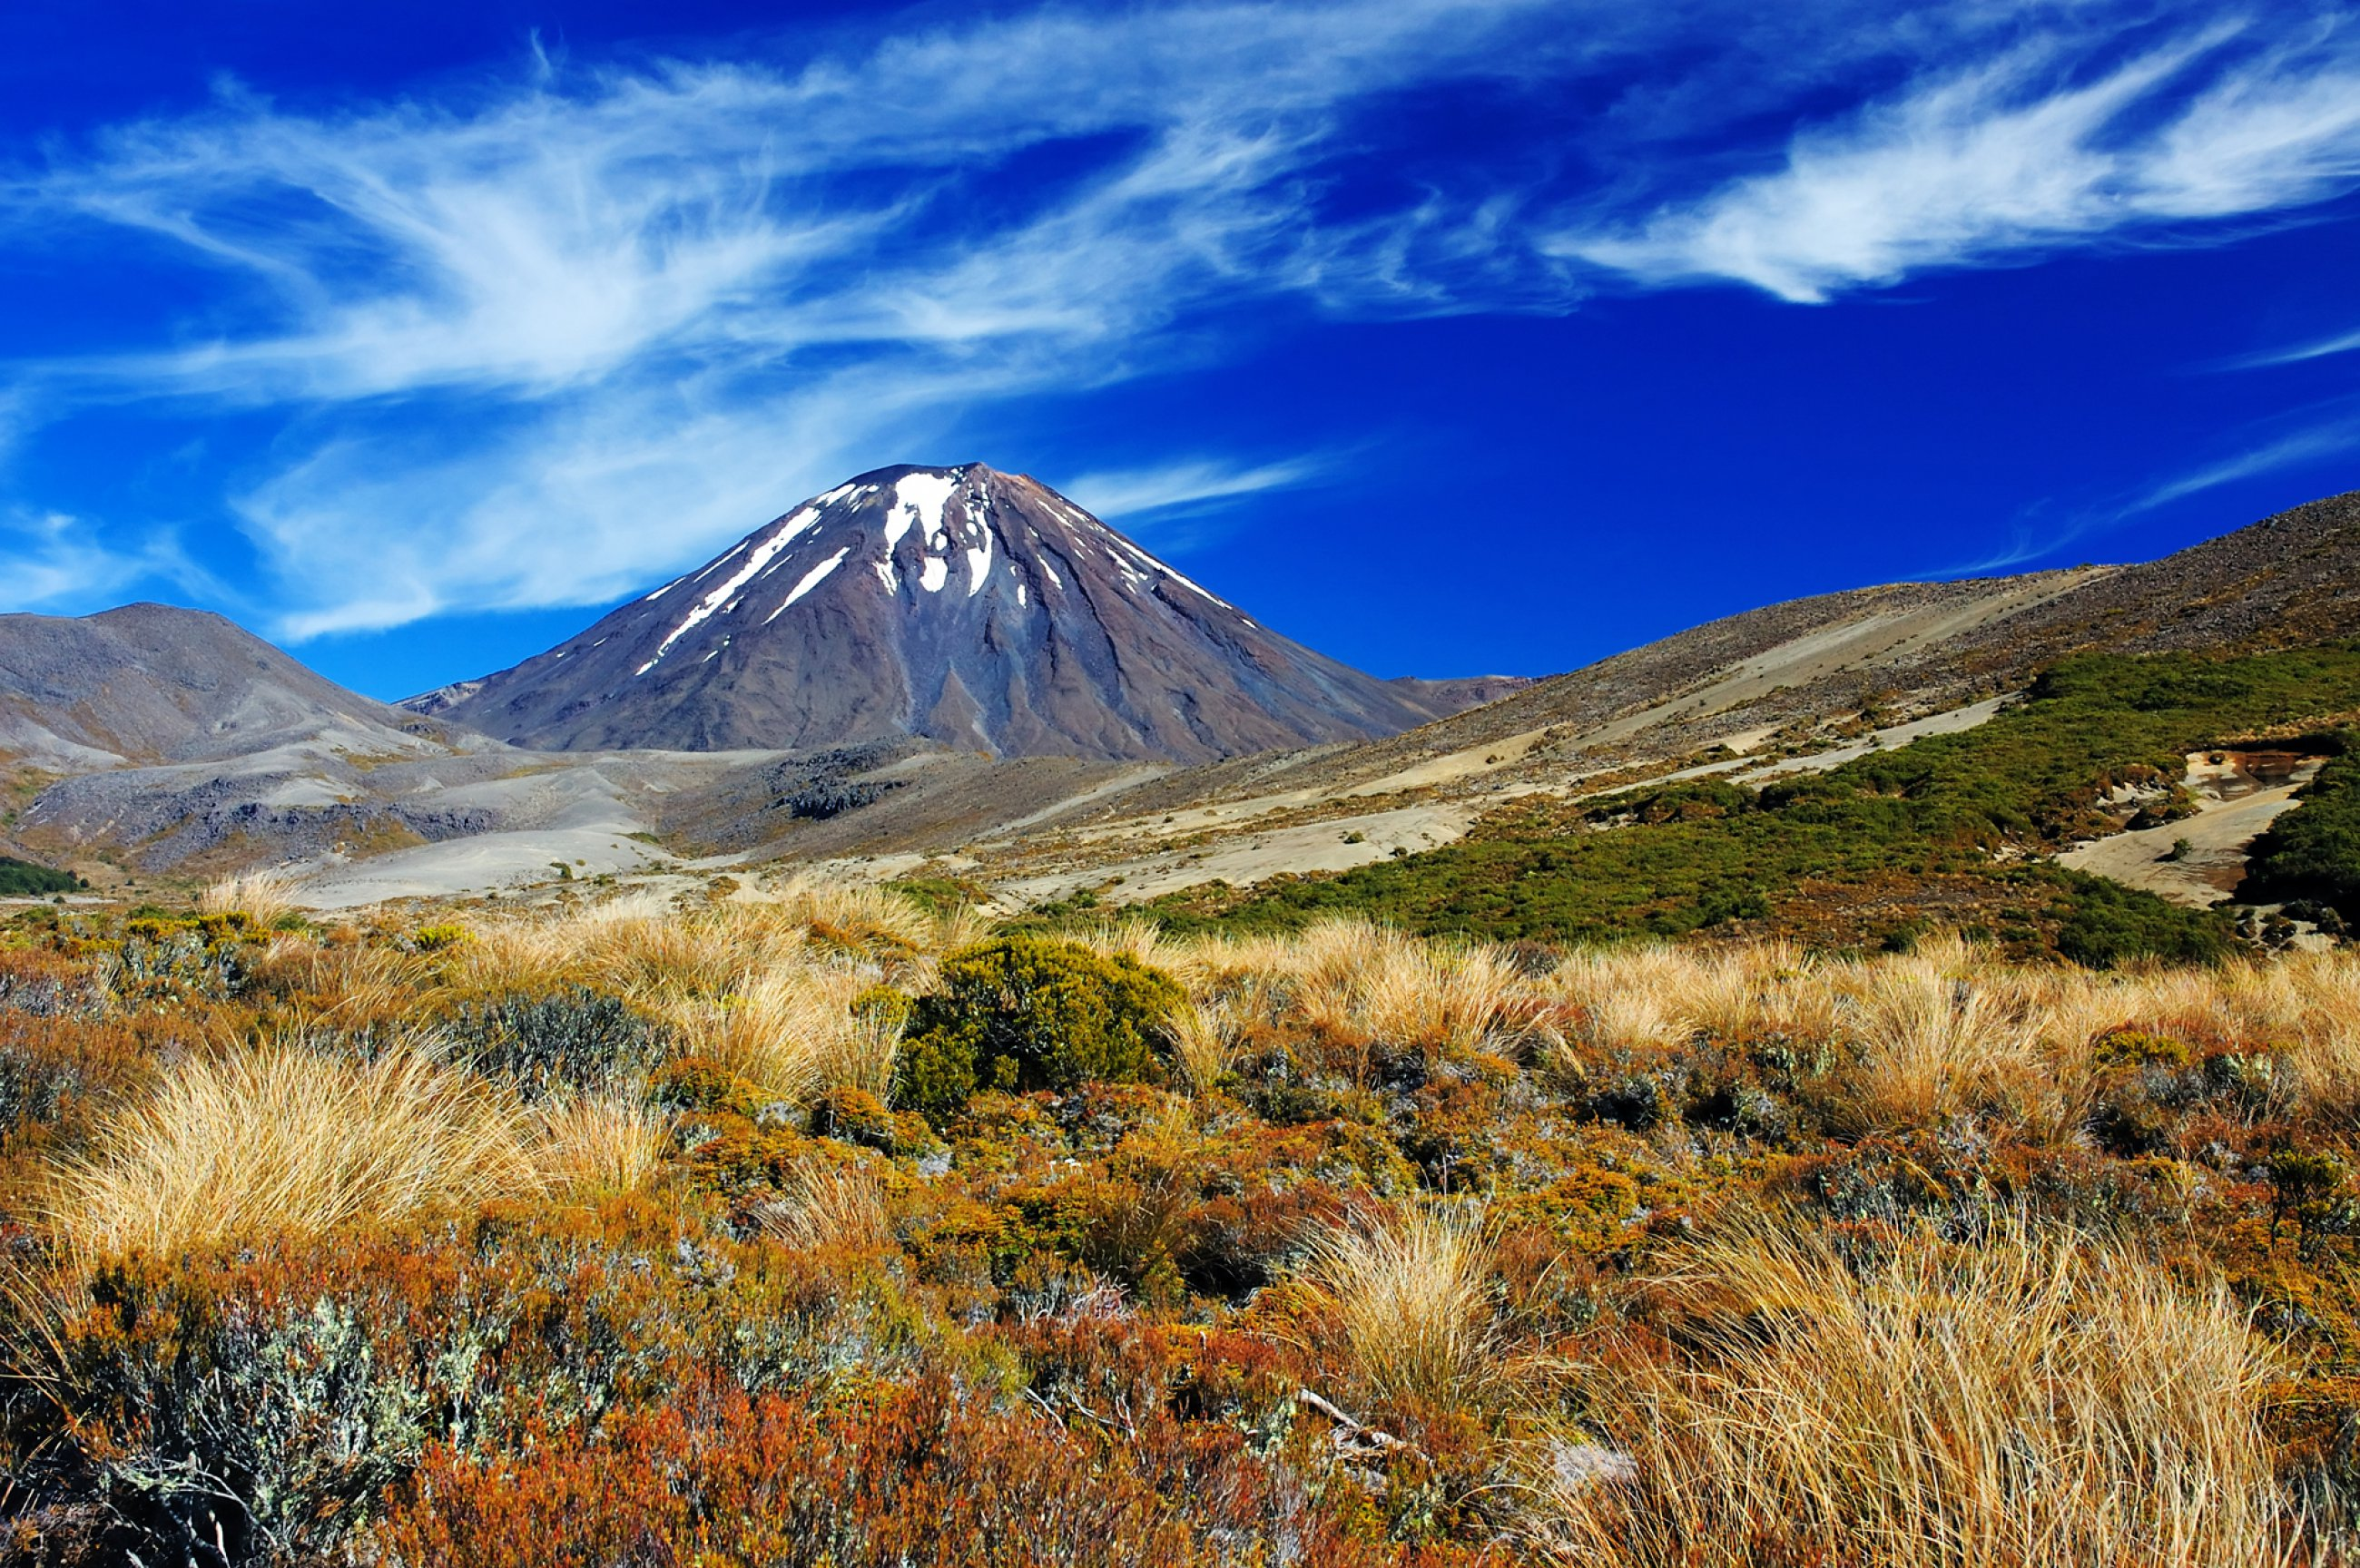 https://bubo.sk/uploads/galleries/5033/tongariro-shutterstock-35700307-3-.jpg